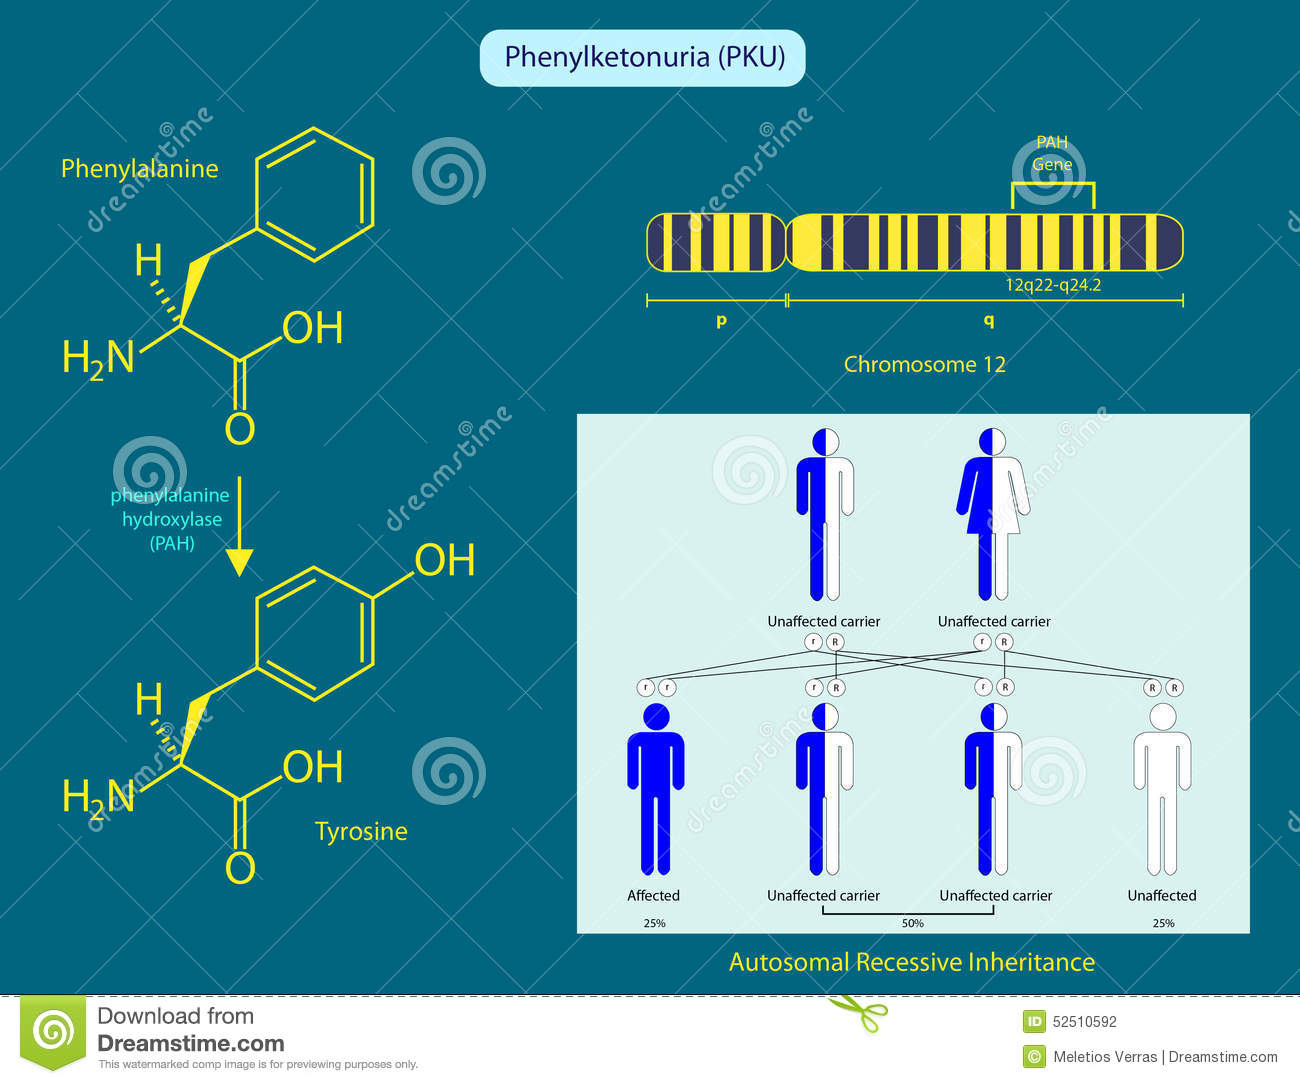 characteristics of phenylketonuria Phenylketonuria (pku), an autosomal recessive disease, is the most common  inborn error of amino acid metabolism in caucasians, affecting 1/10,000.